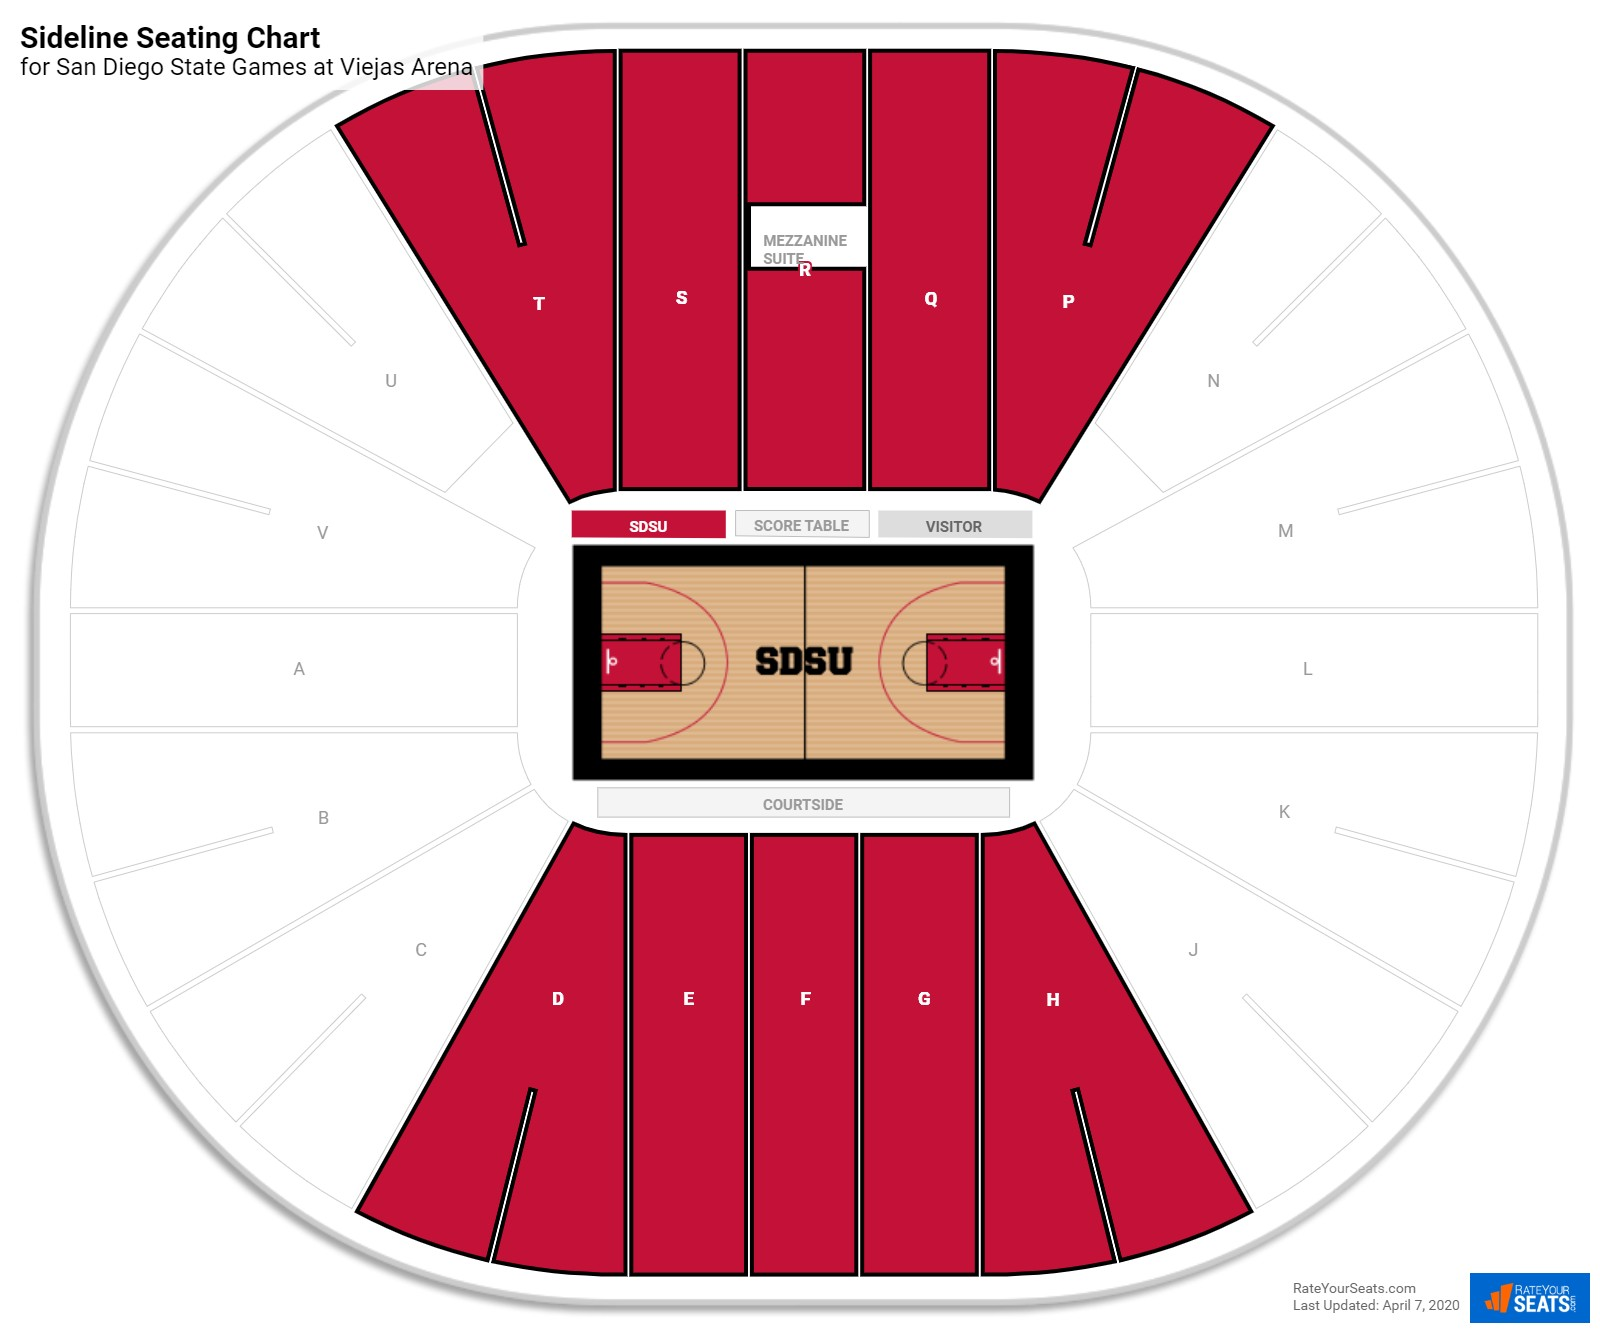 Viejas Arena Sideline seating chart